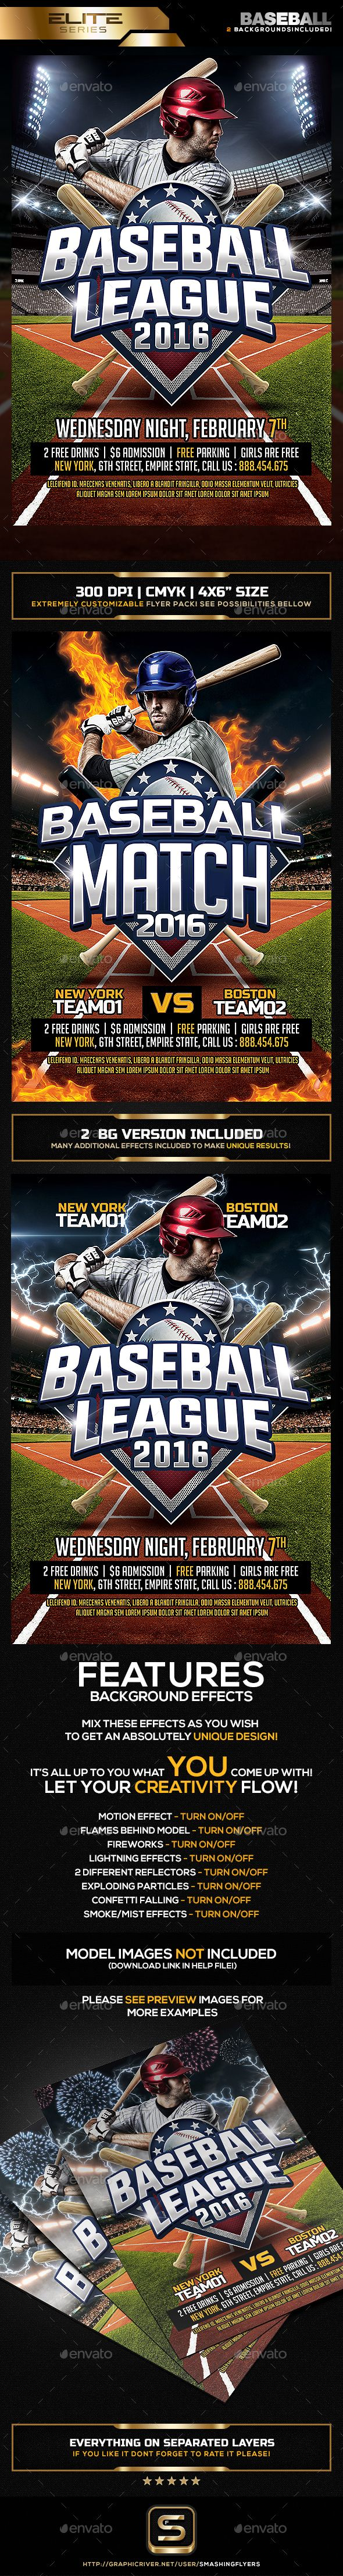 Baseball League Flyer Template PSD. Download here: http://graphicriver.net/item/baseball-league-flyer-template/14686834?ref=ksioks